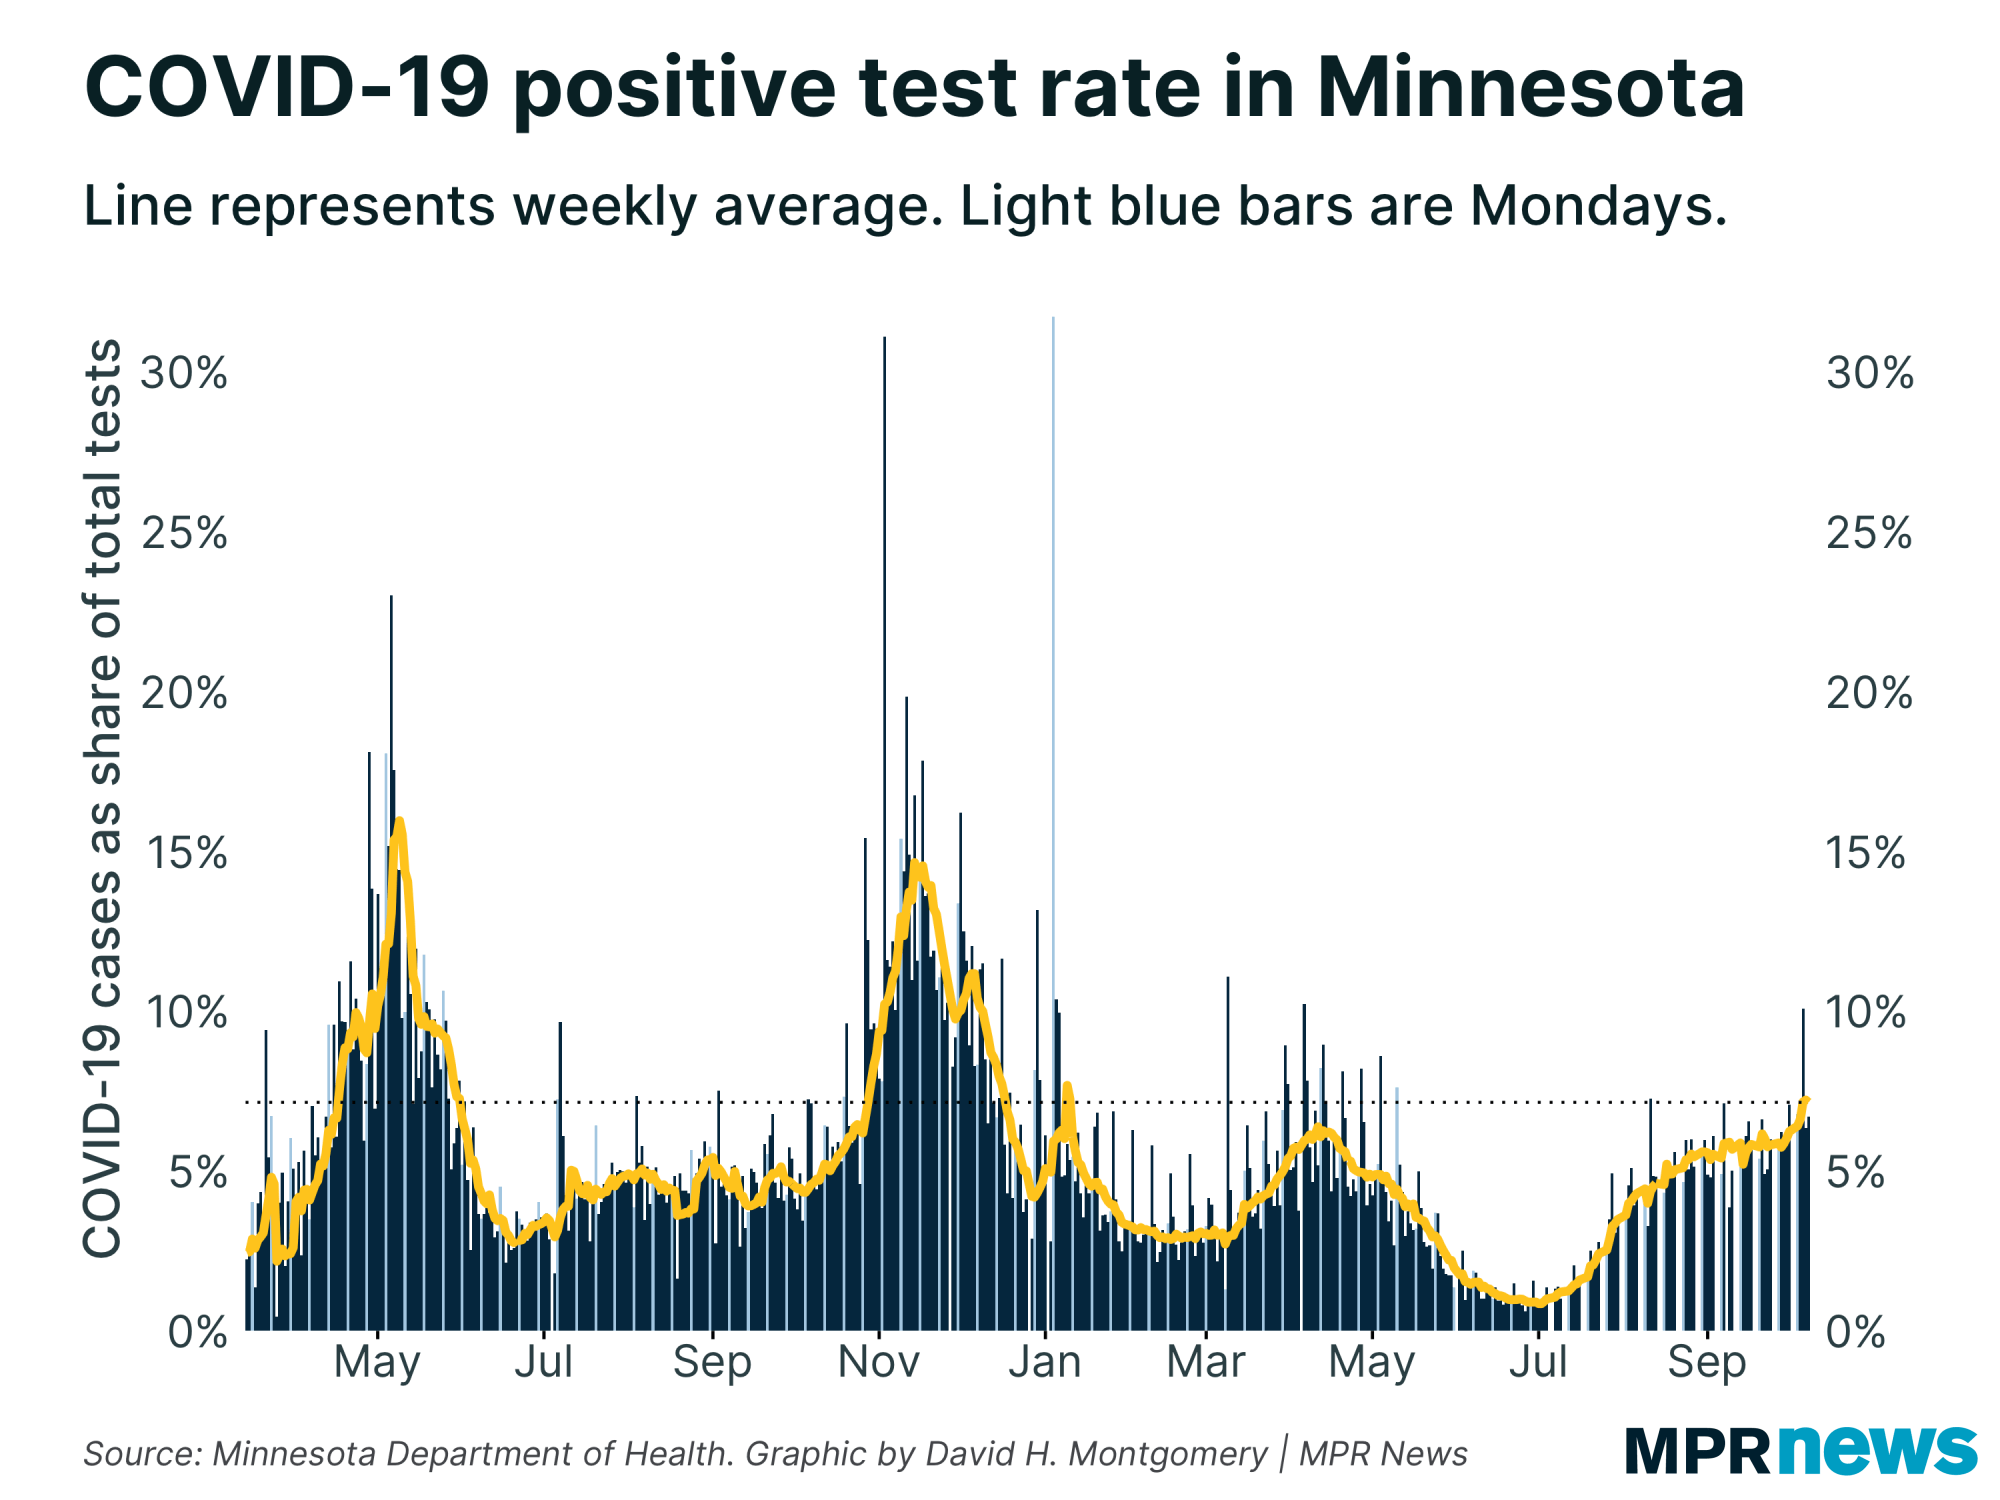 Percent of COVID-19 tests to come back positive